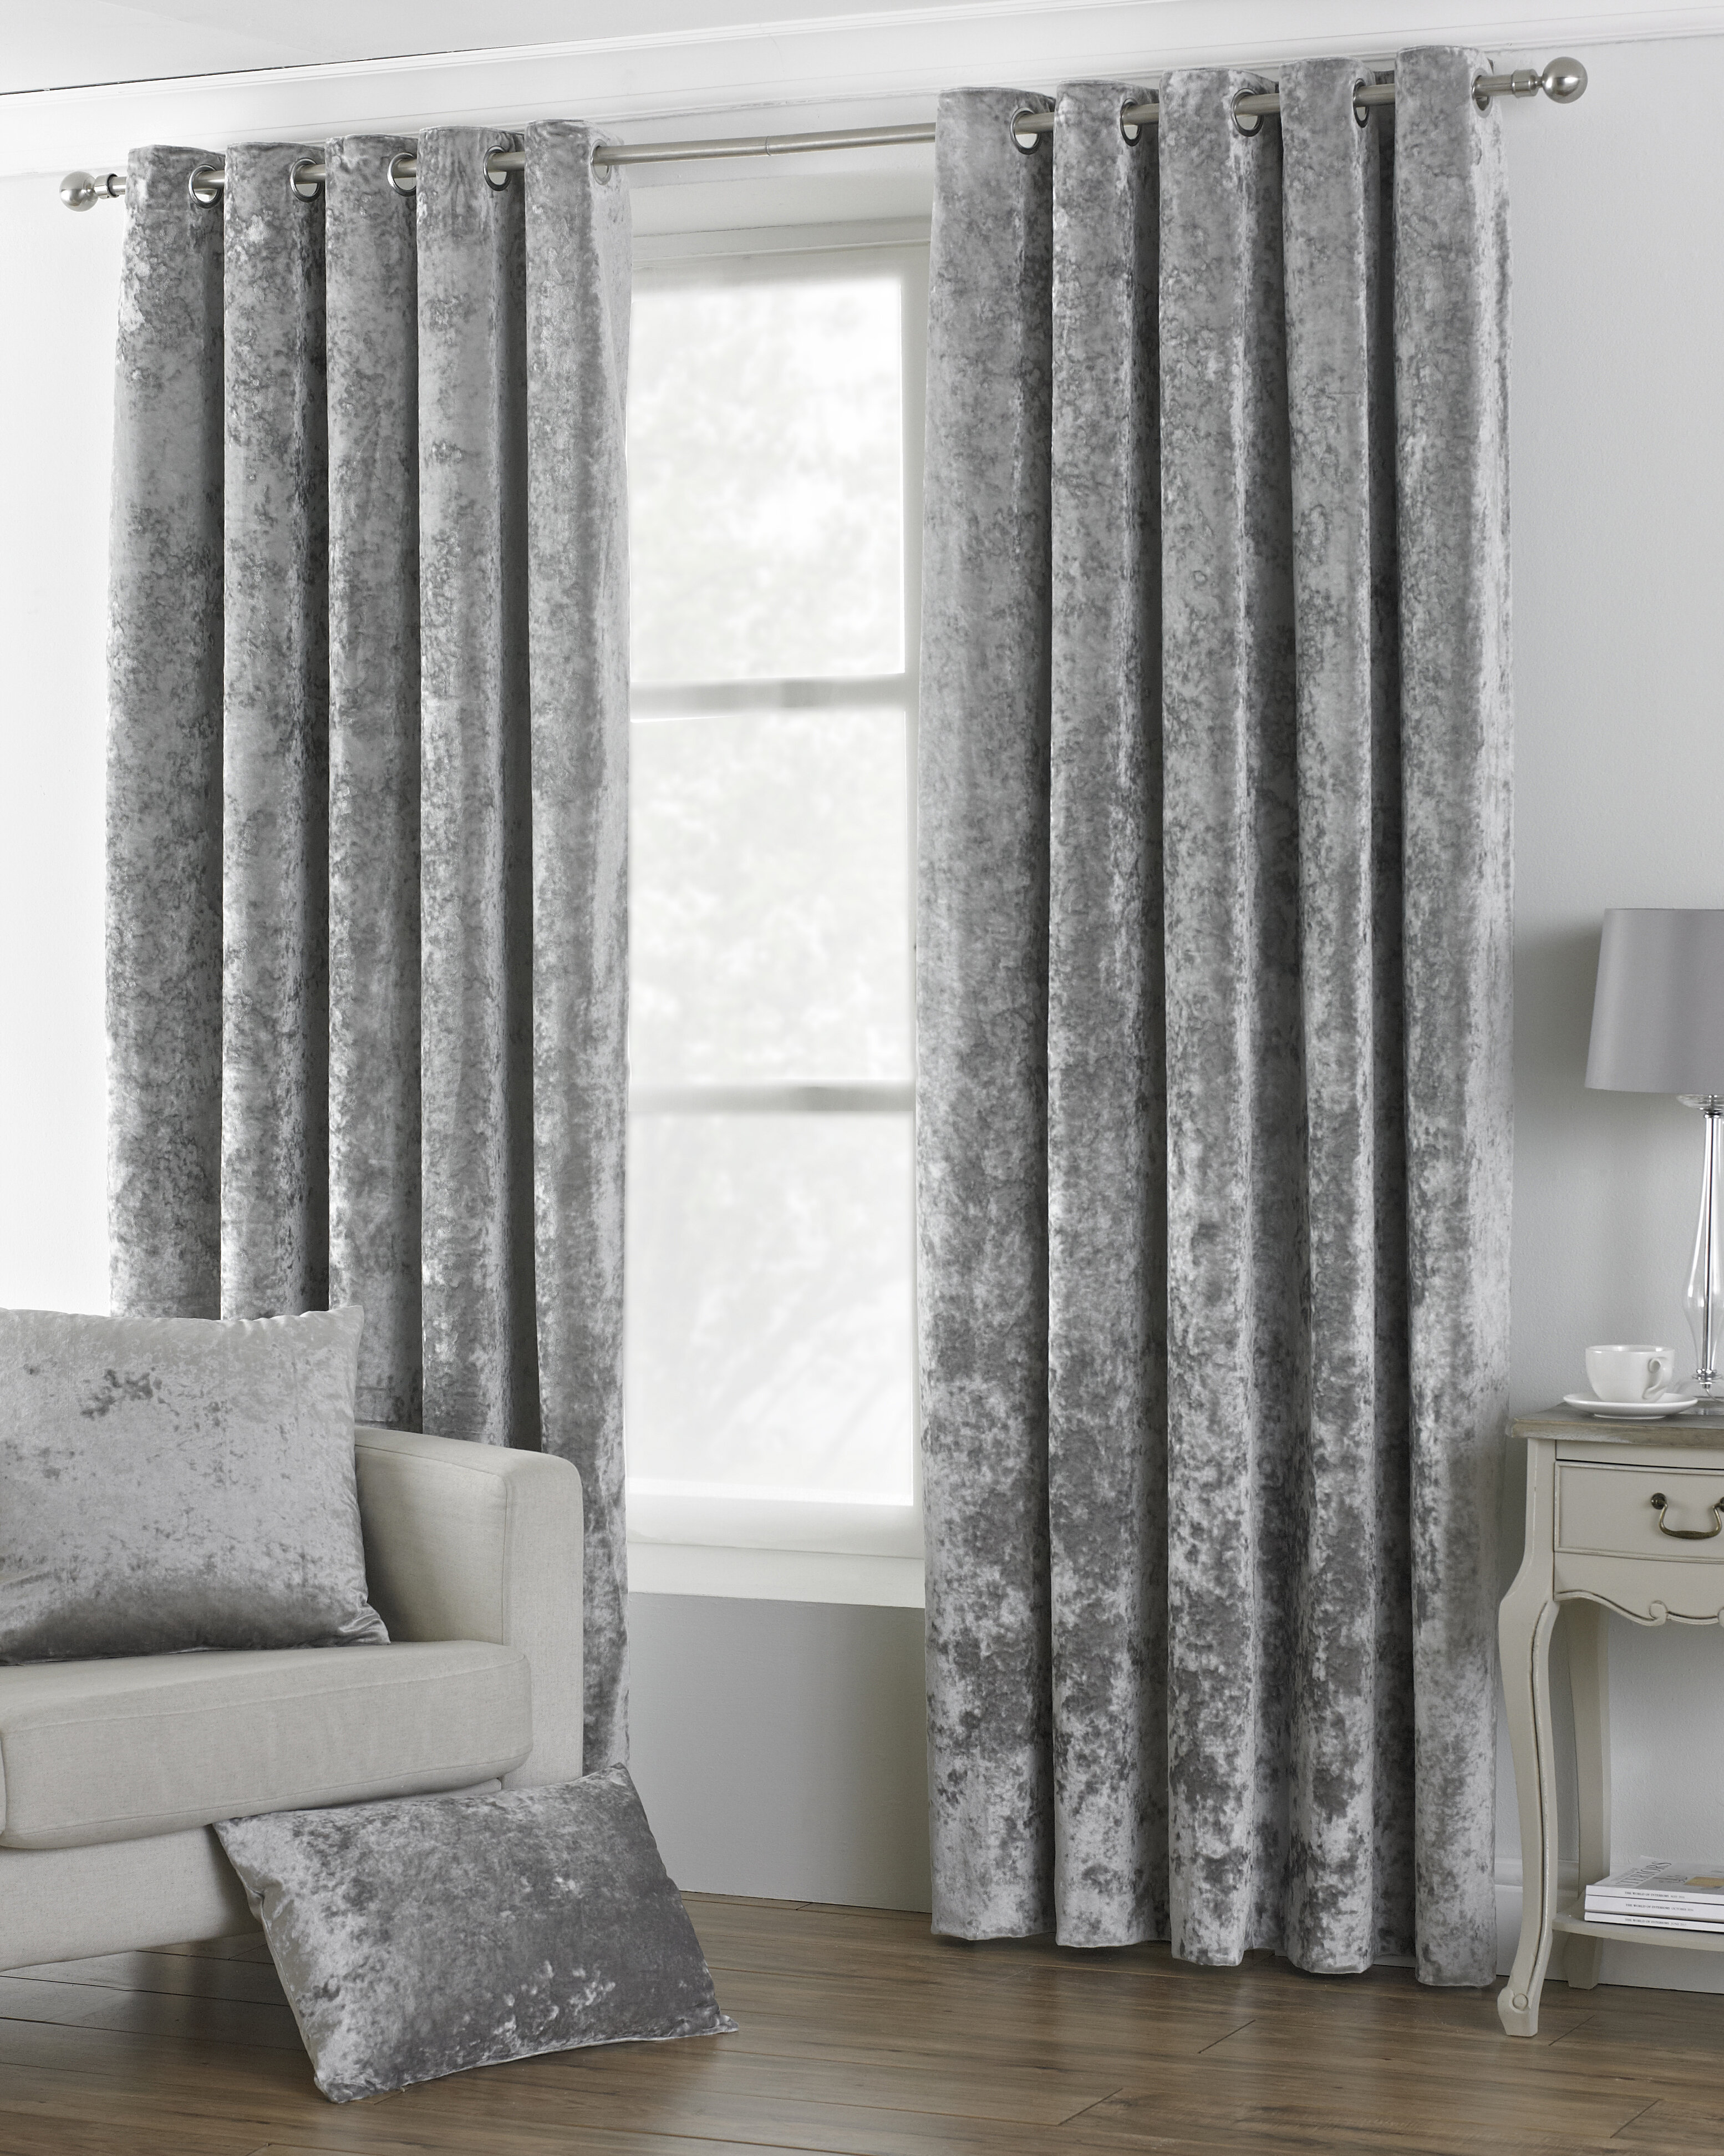 show shop product action hallam damask lined williams d eyelet curtains details j